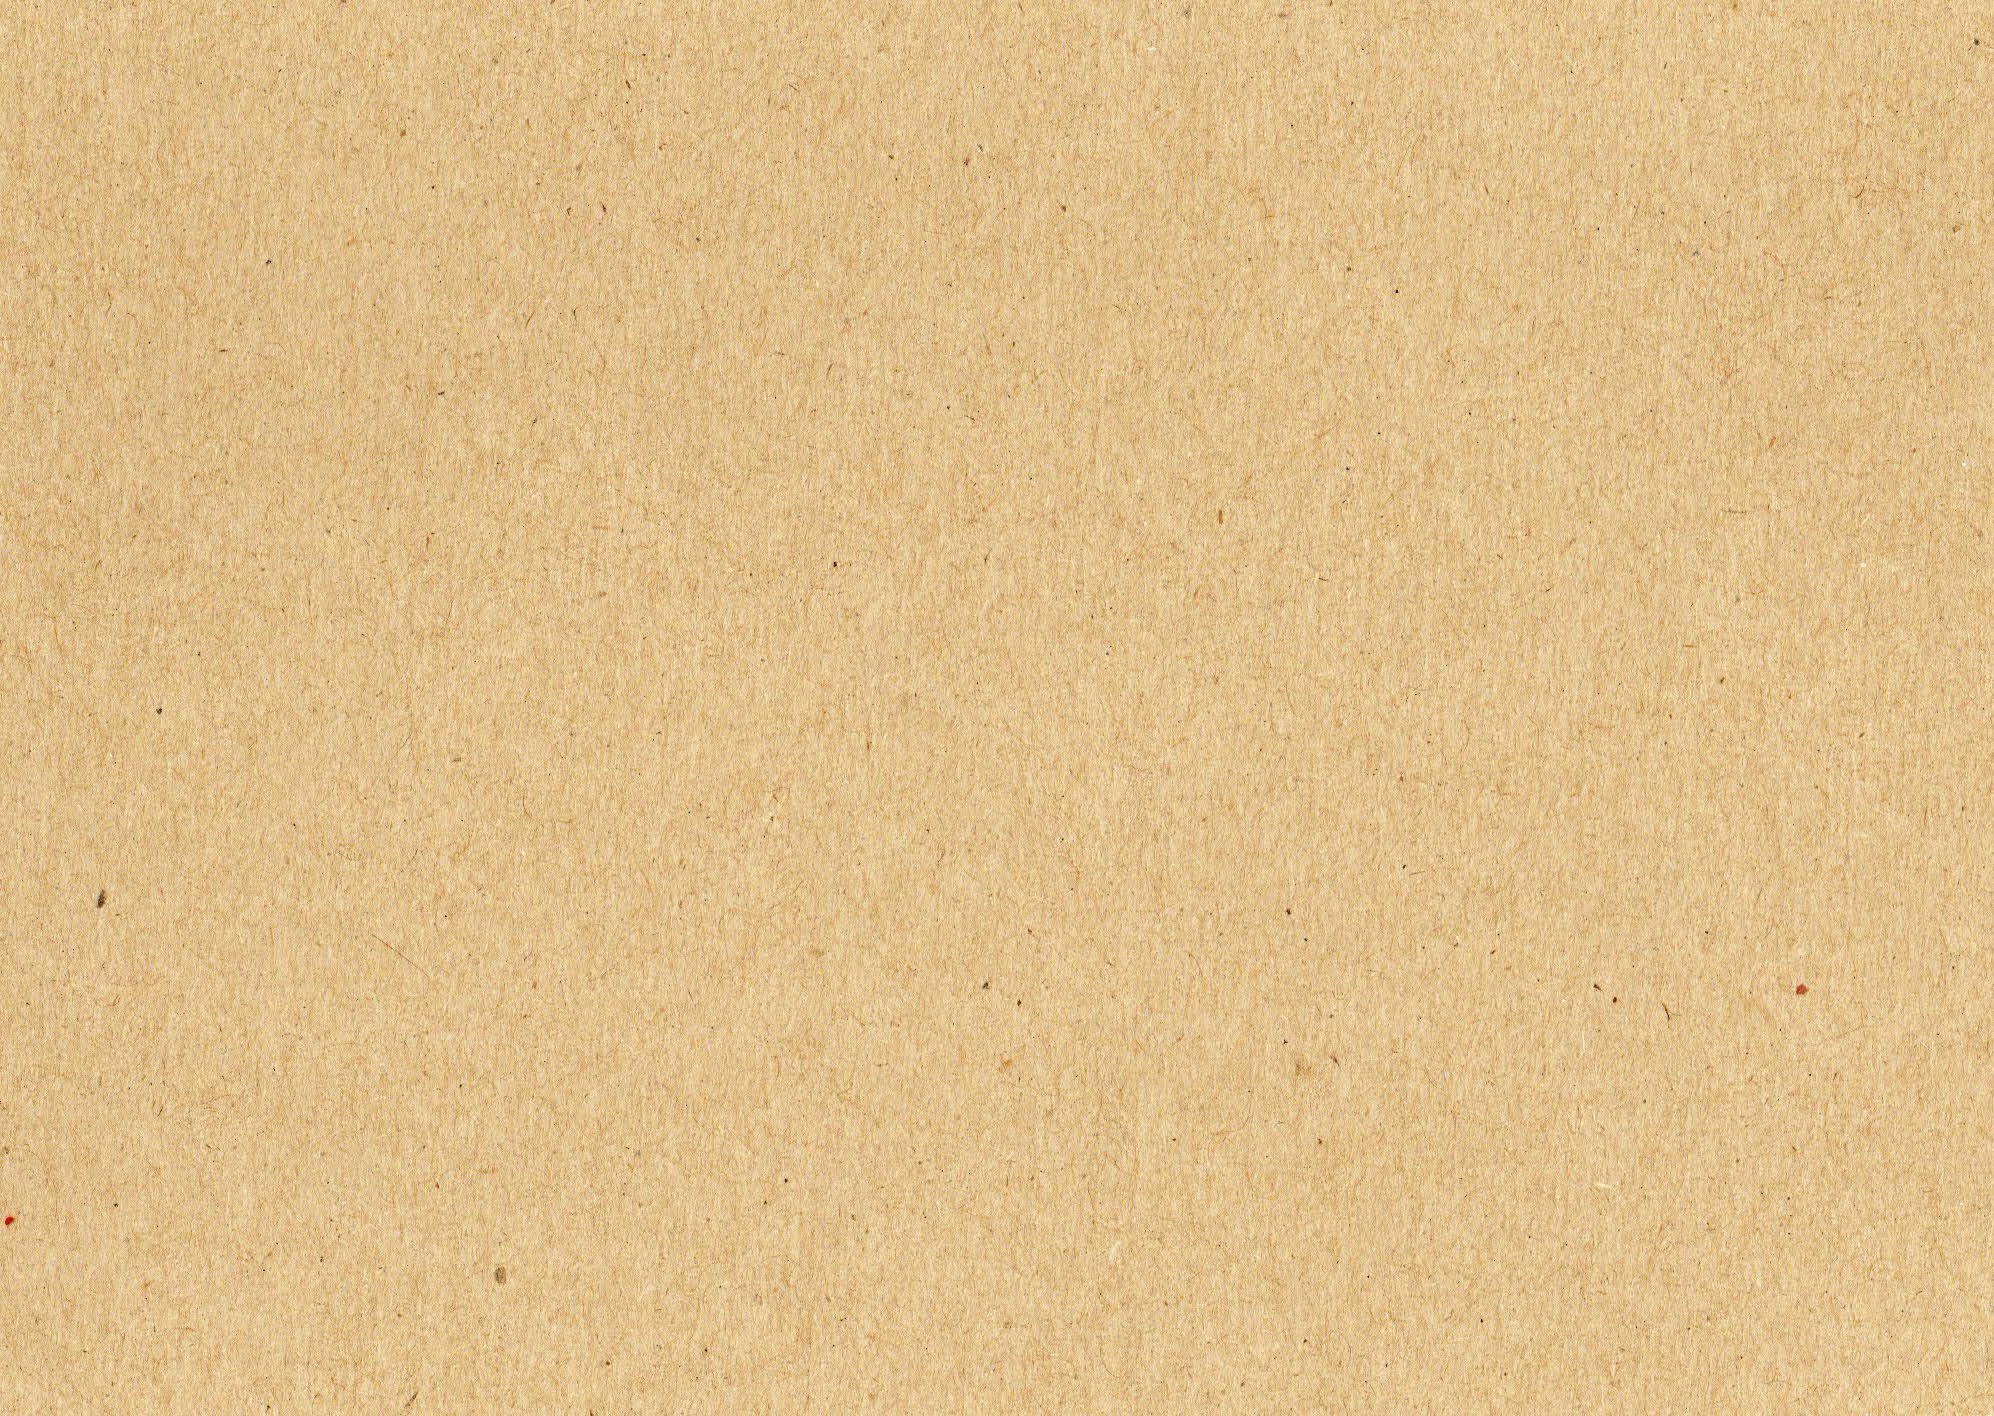 kraft-paper-texture - Holdman Honey